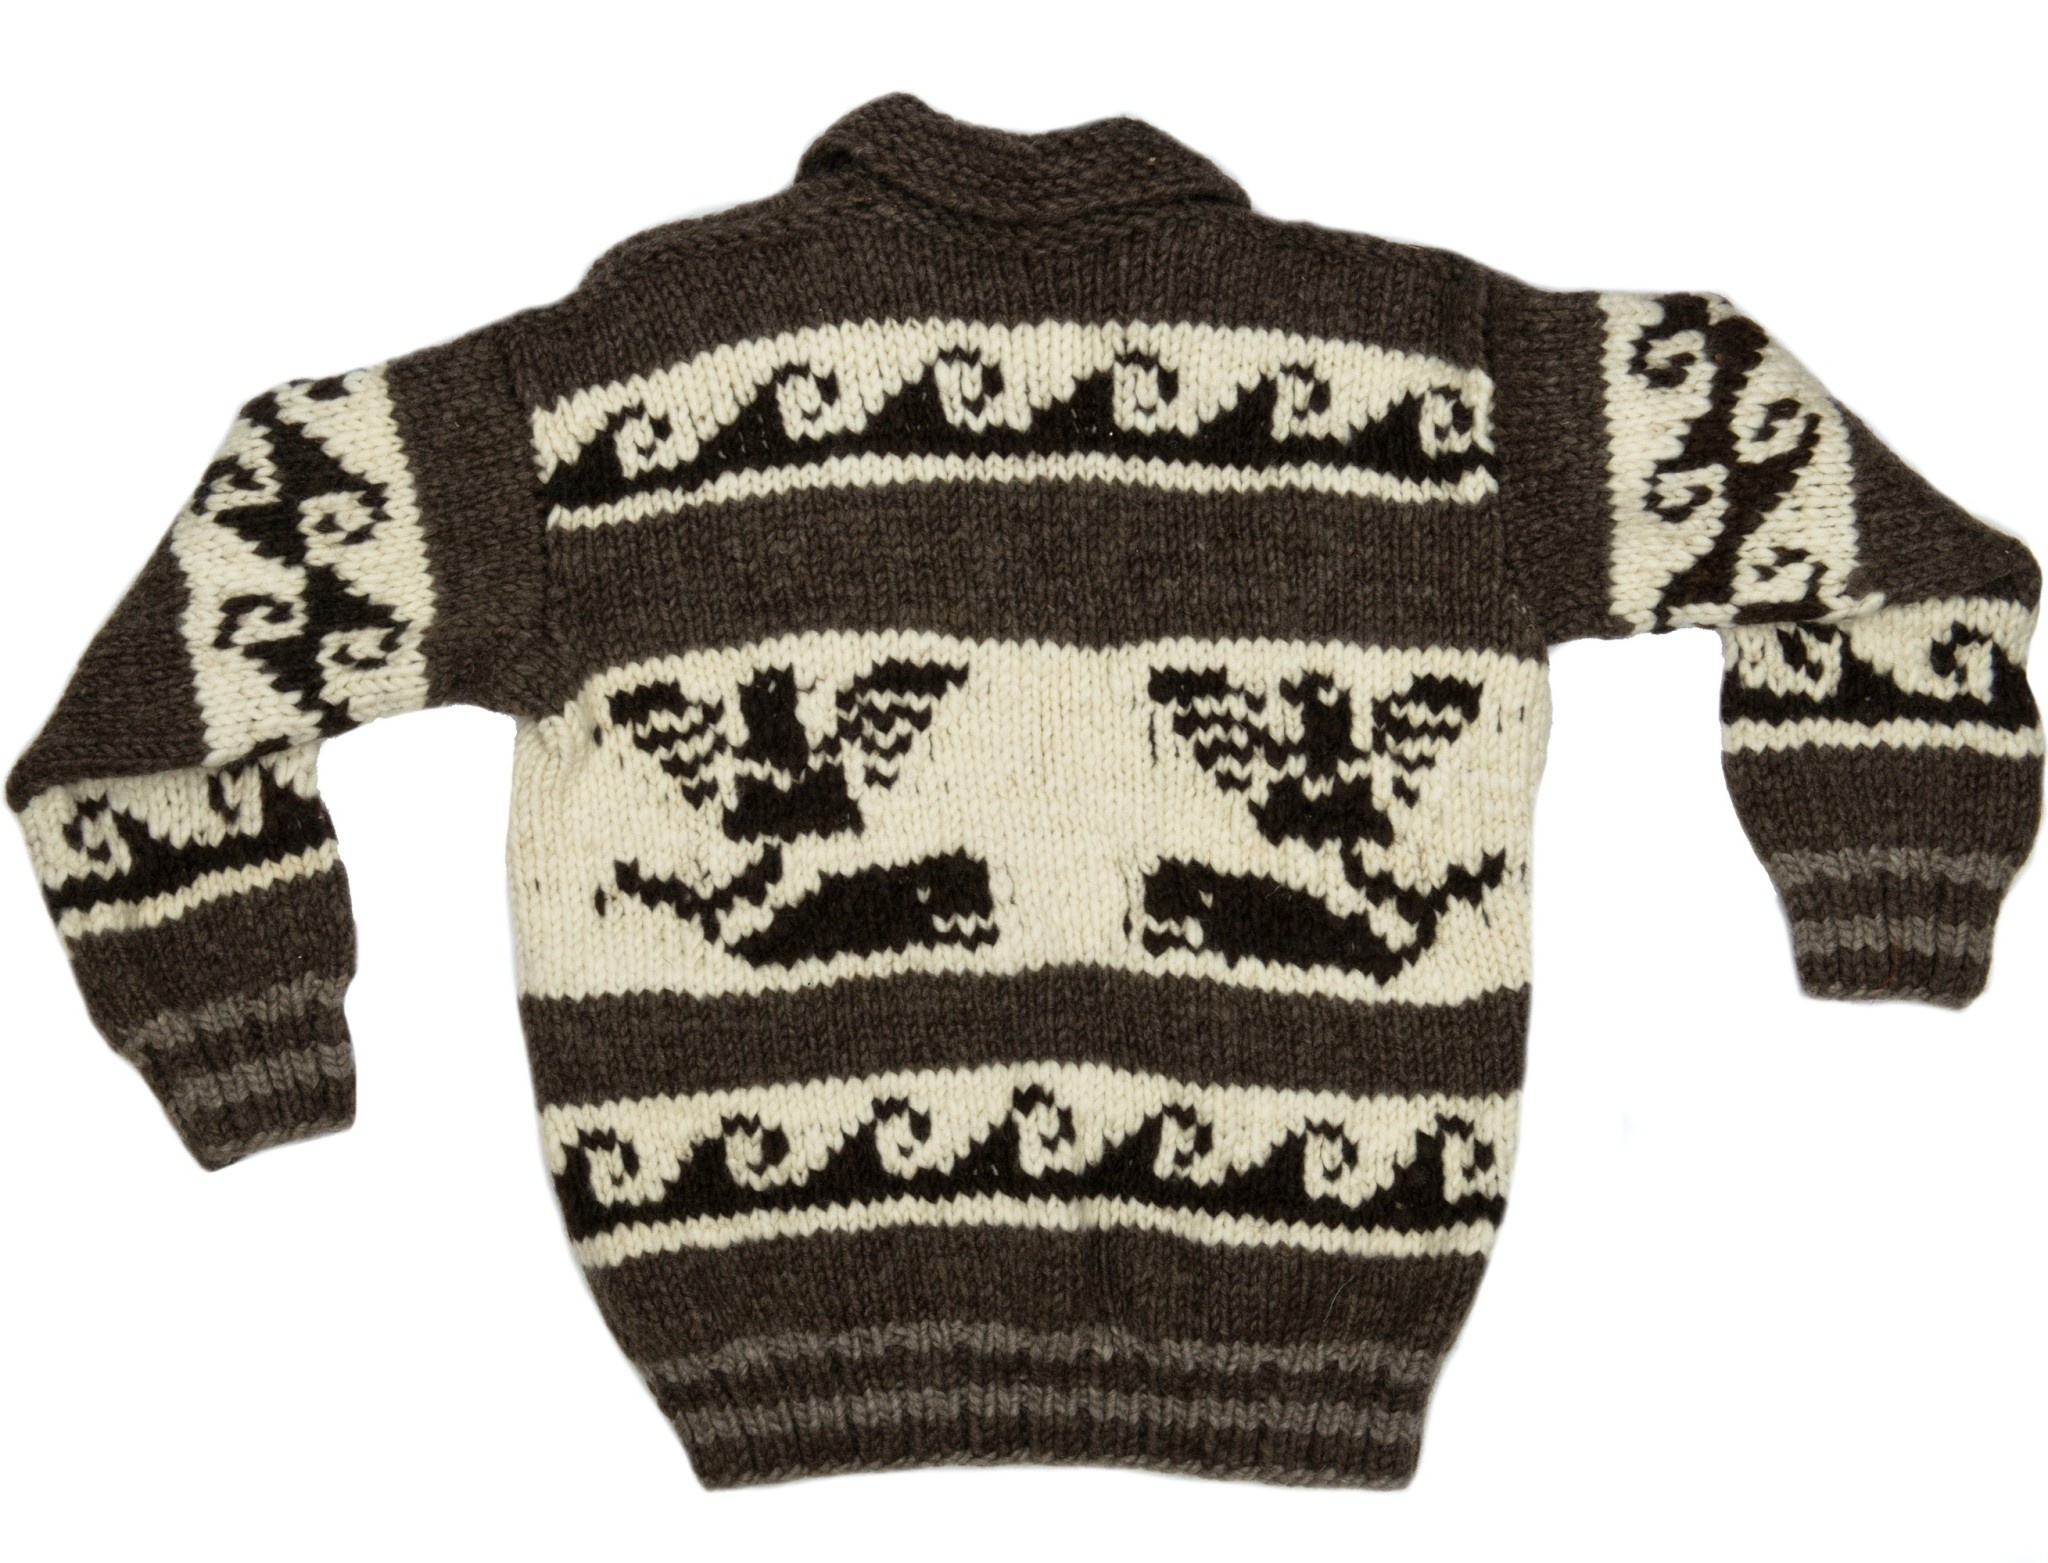 Medium Thunderbird / Orca Sweater with Waves